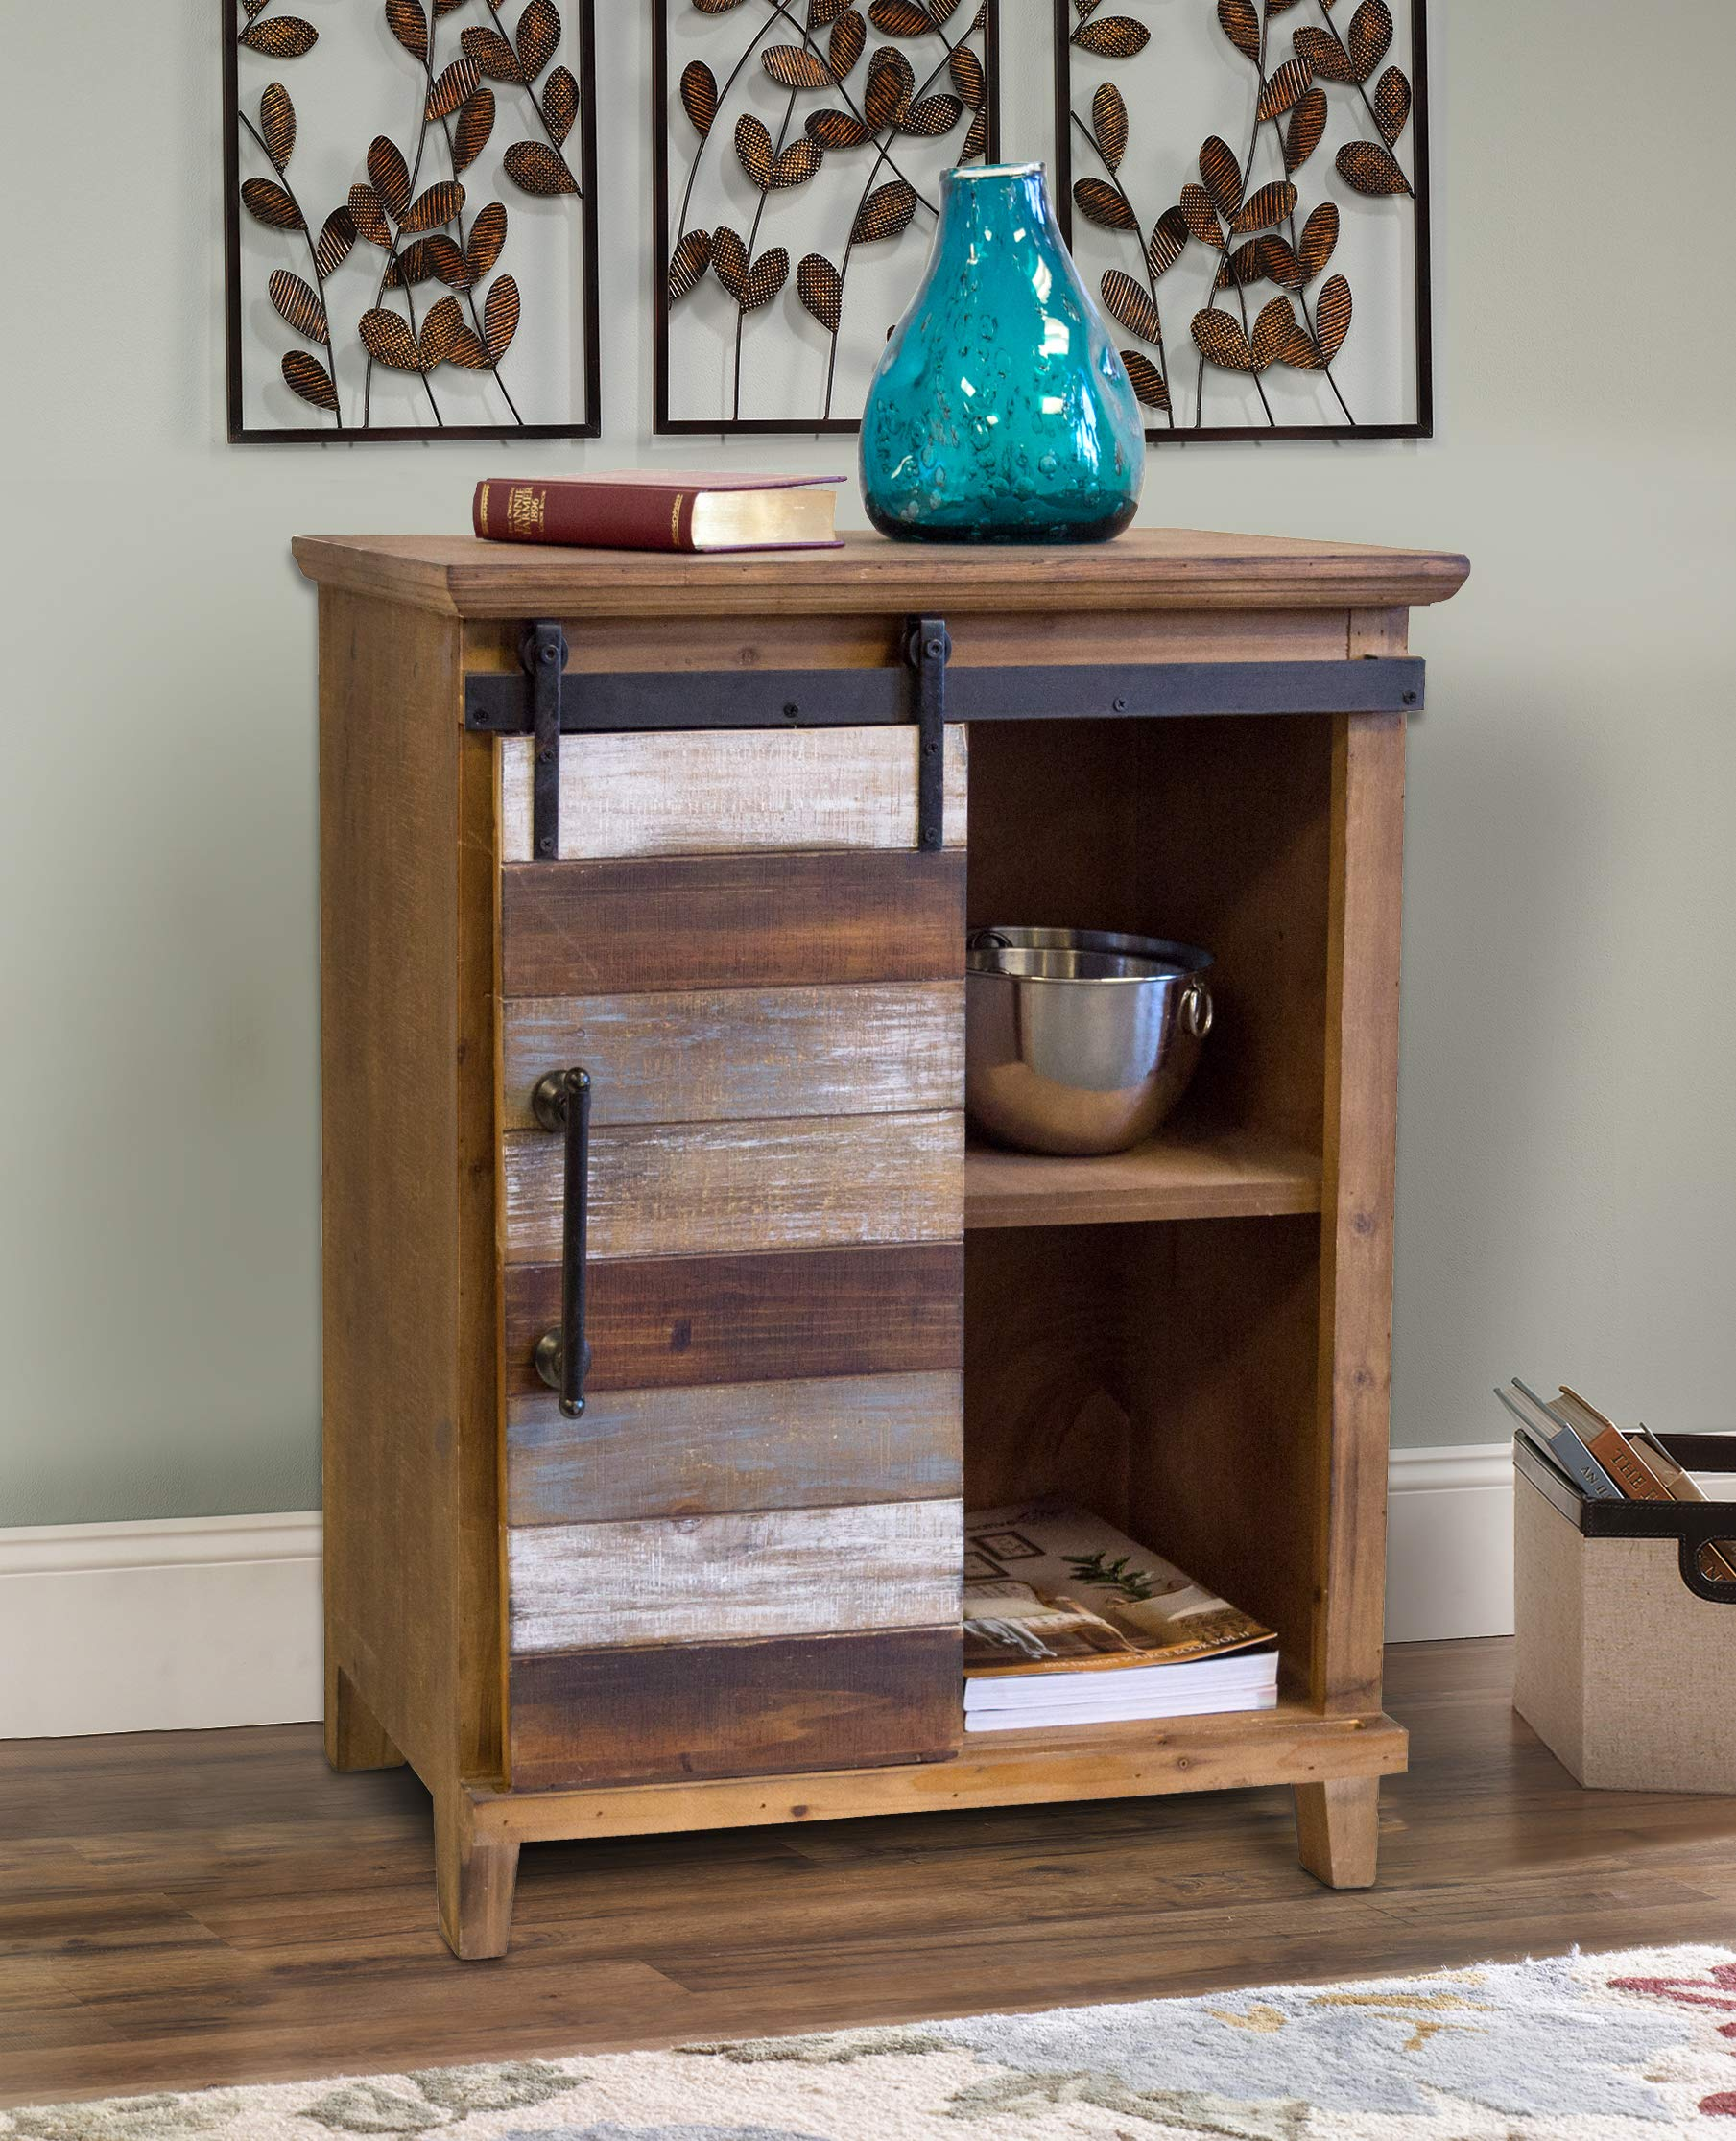 OS Home and Office 475053 Pantry Cabinet, Distressed, Antique Barnwood